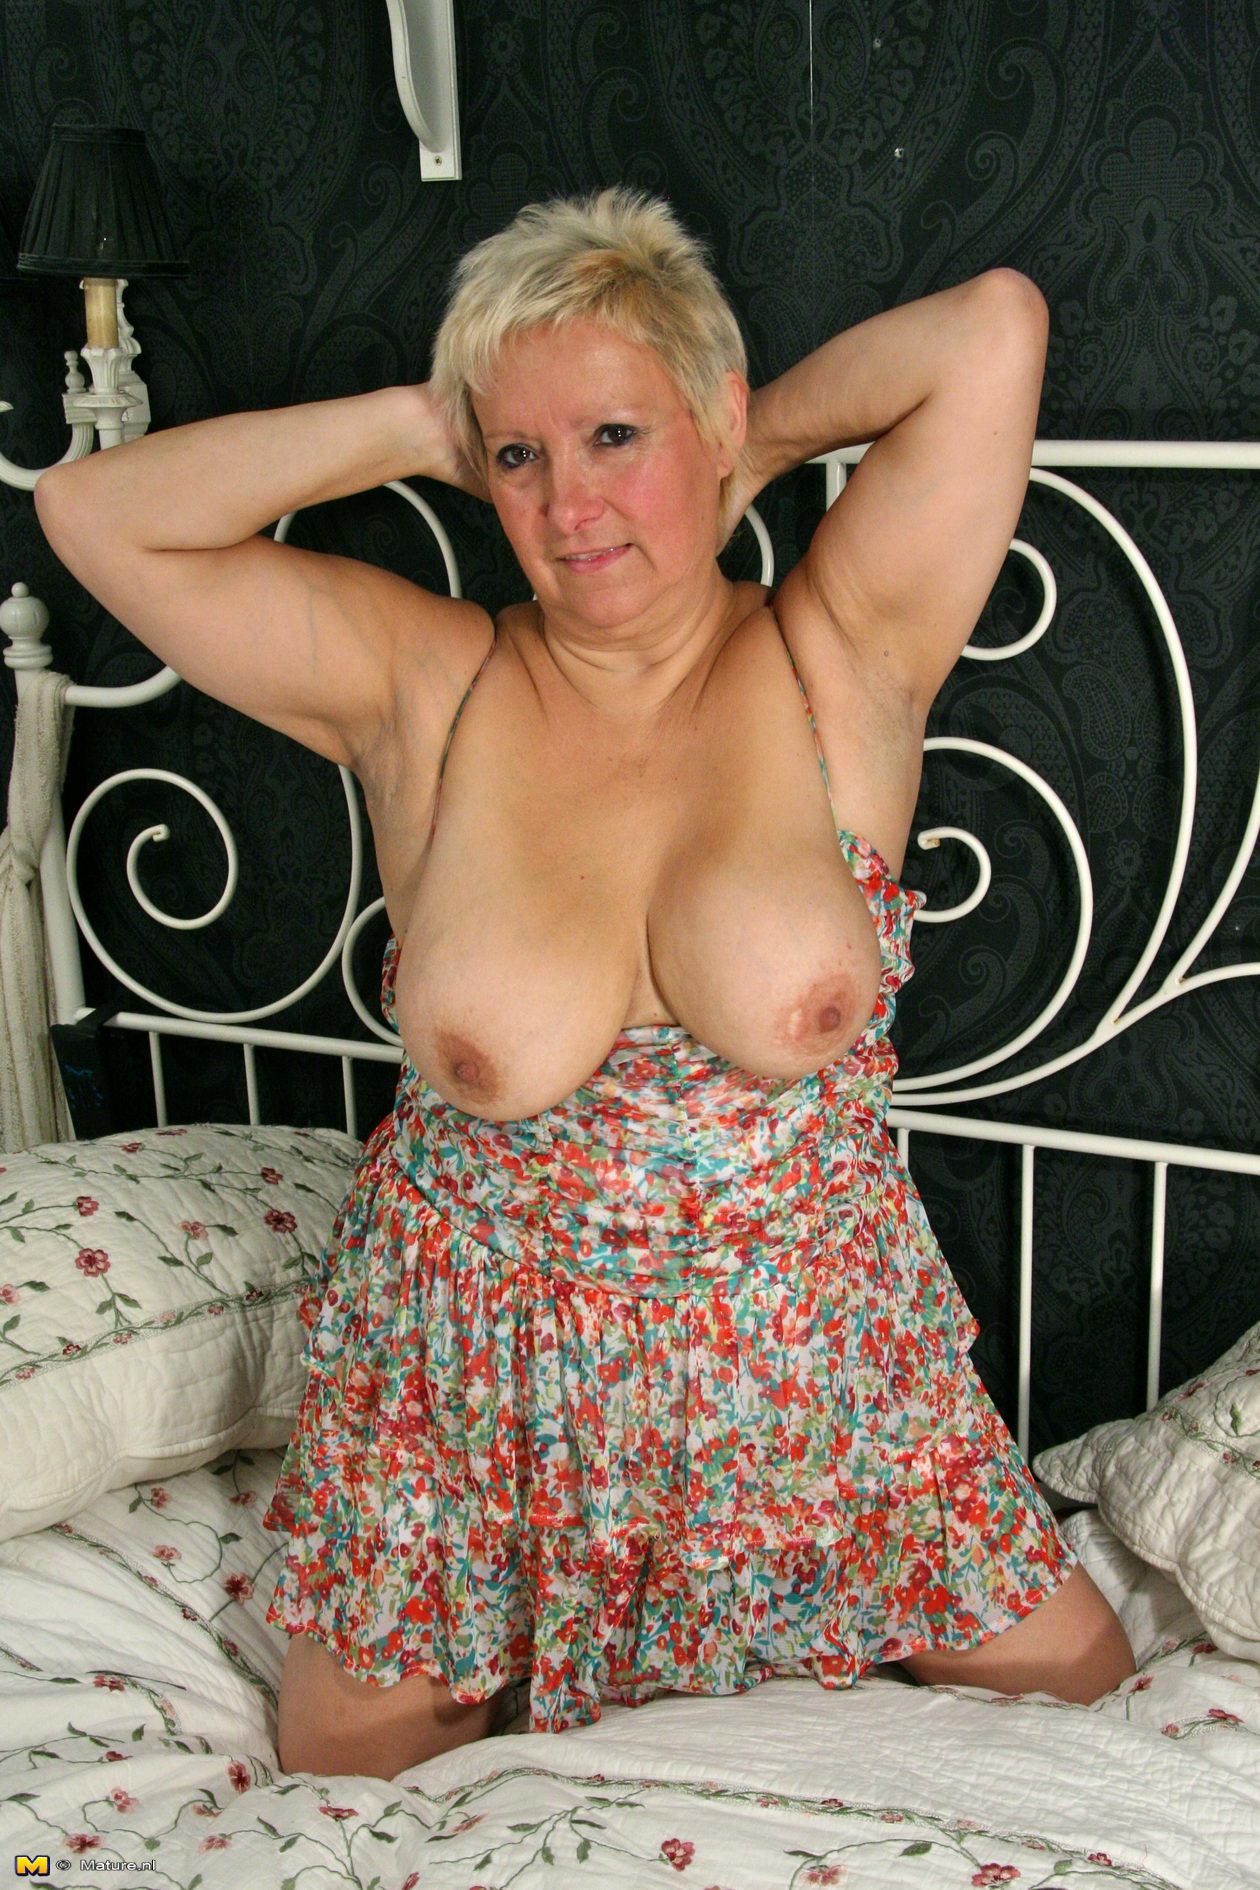 fat - caramel mature | videos